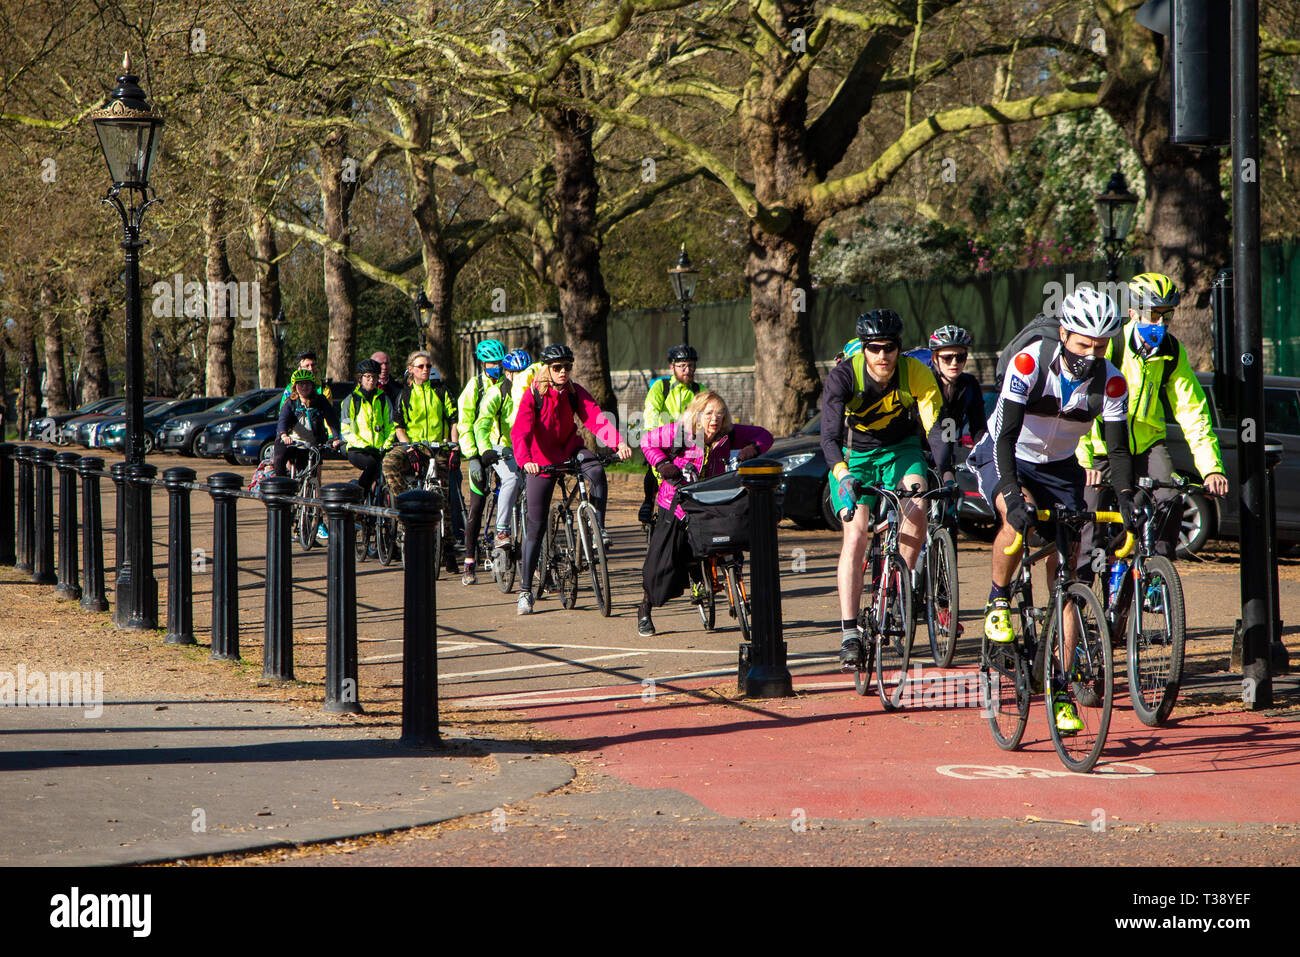 A queue of cyclists riding to work on the Mall in central London - Stock Image